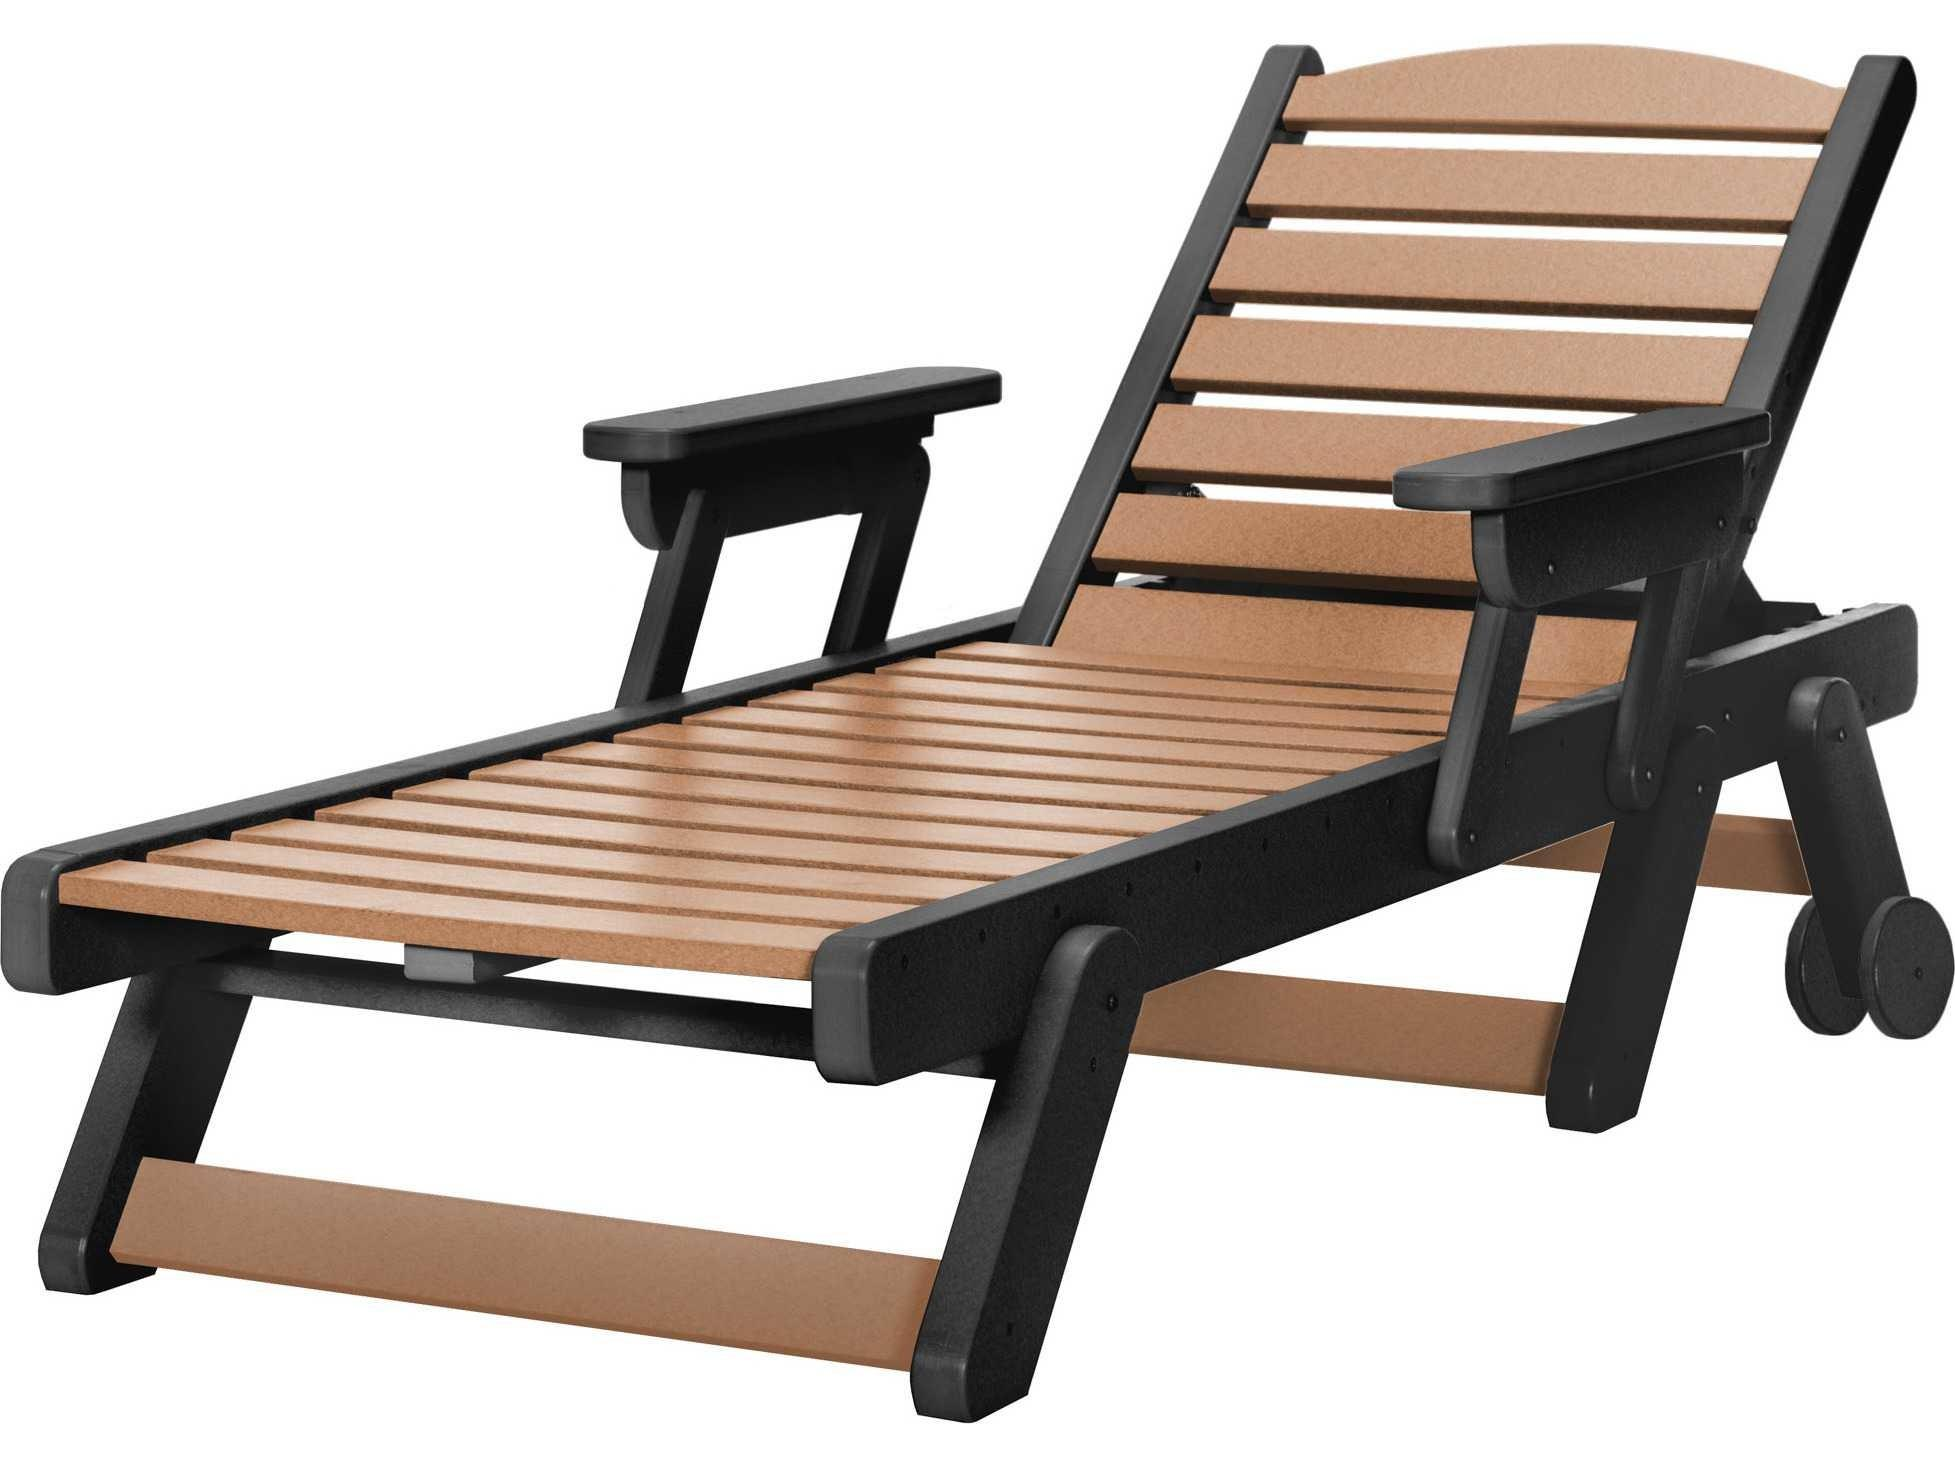 Pawleys Island Porch Recycled Plastic Chaise Lounge Srcl1